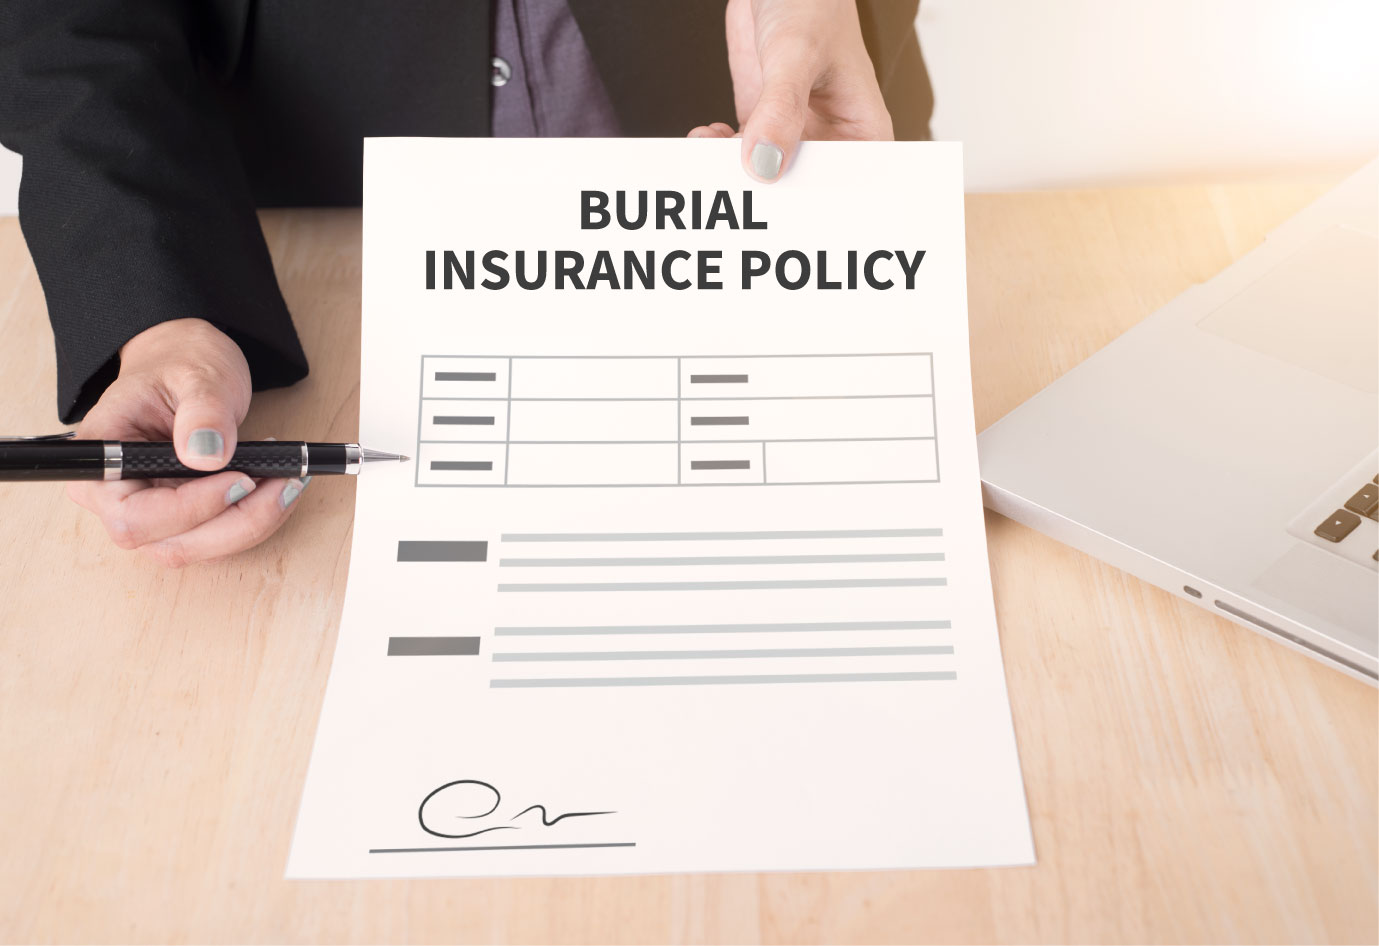 burial insurance policy